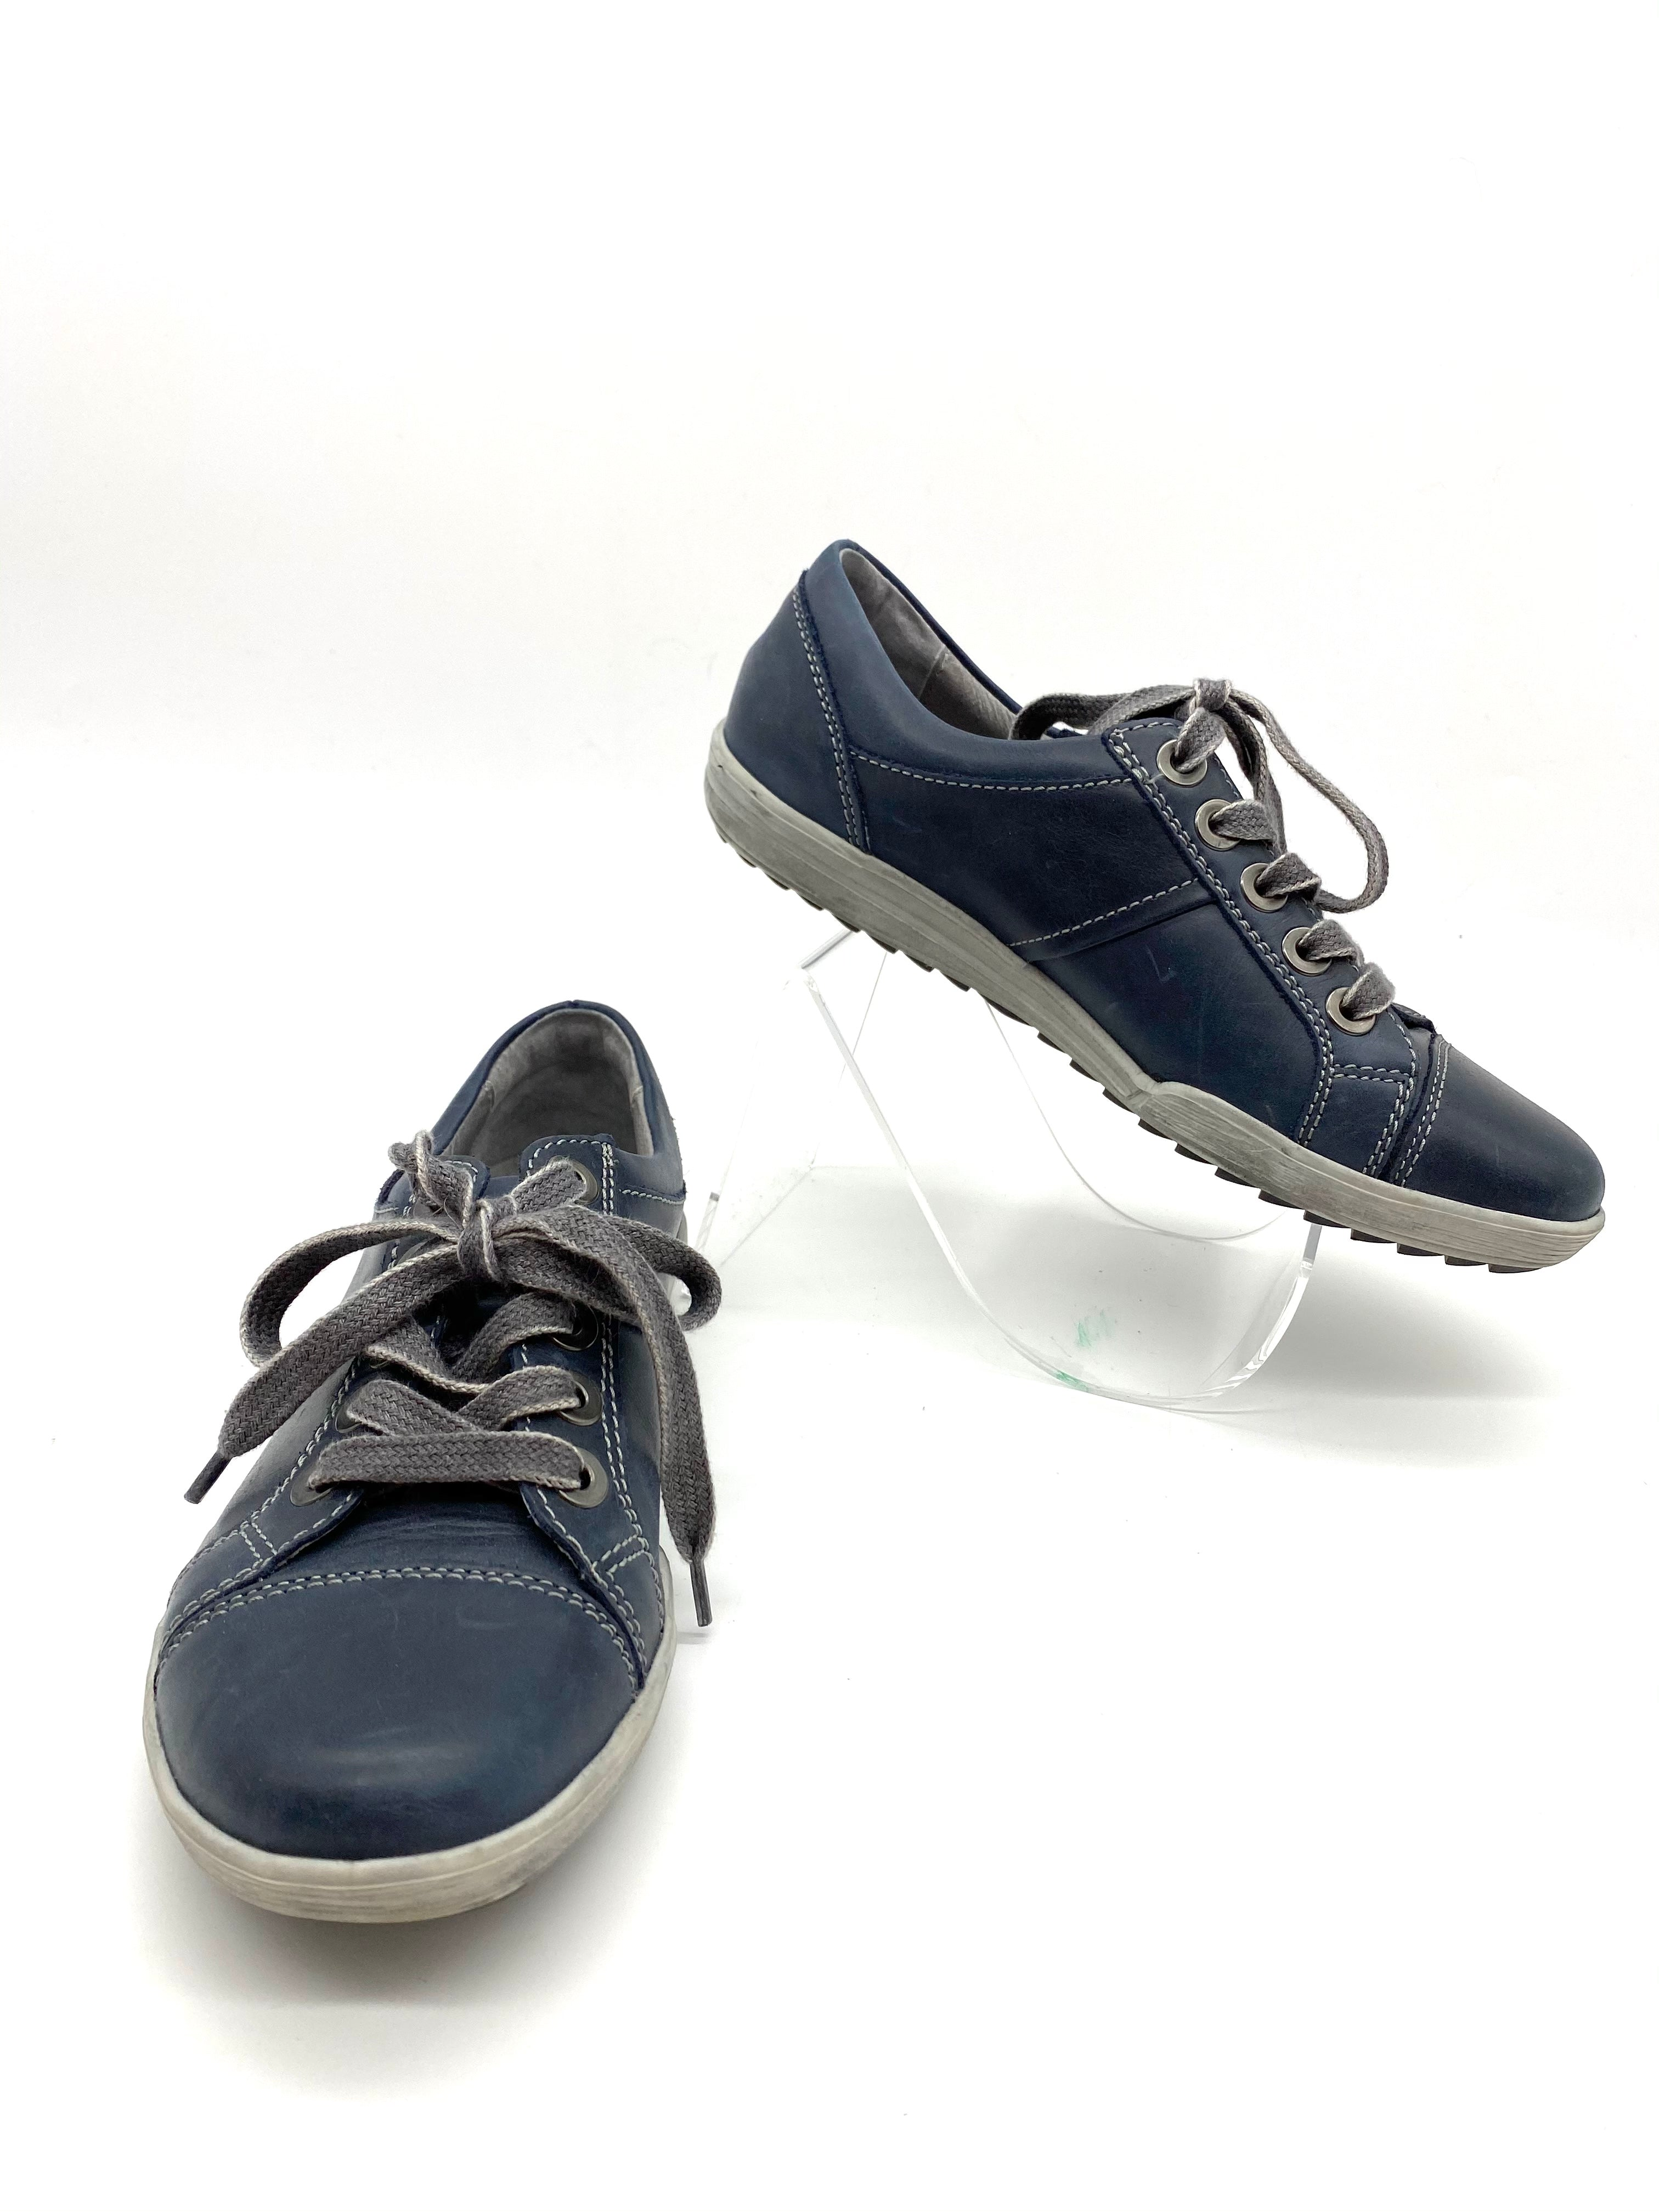 Primary Photo - BRAND: JOSEF SEIBEL <BR>STYLE: SHOES FLATS <BR>COLOR: SLATE BLUE <BR>SIZE: 6 /36<BR>SKU: 262-26241-42774